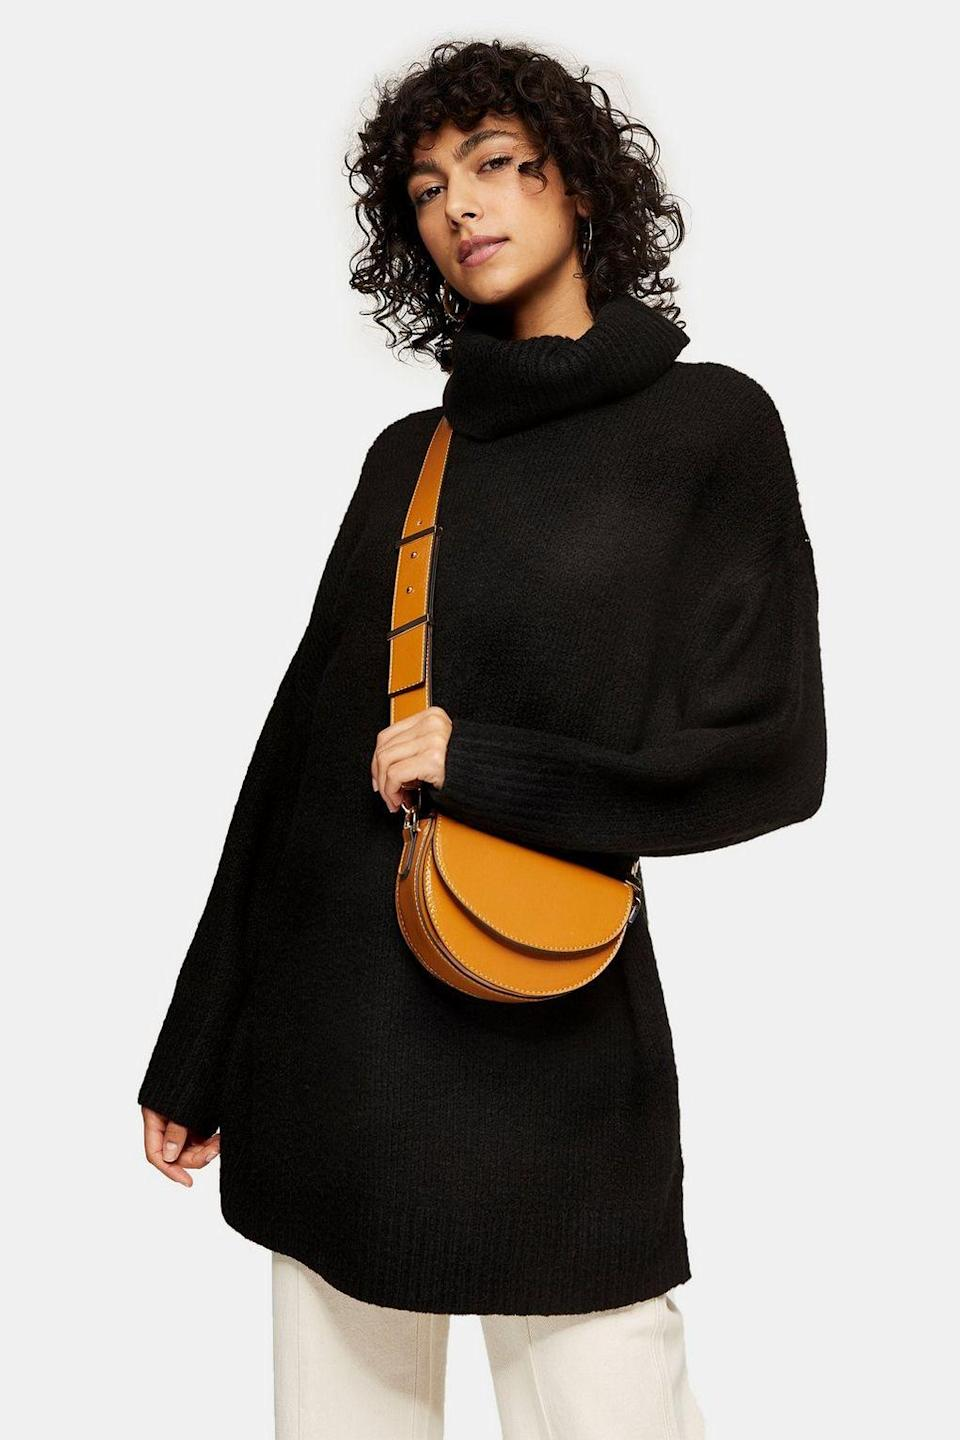 """<br><br><strong>Topshop</strong> Oversized Roll Neck Knitted Sweater Dress, $, available at <a href=""""https://go.skimresources.com/?id=30283X879131&url=https%3A%2F%2Fus.topshop.com%2Fen%2Ftsus%2Fproduct%2Fclothing-70483%2Fdresses-70497%2Fdtos-roll-dress-blk-9431077"""" rel=""""nofollow noopener"""" target=""""_blank"""" data-ylk=""""slk:Topshop"""" class=""""link rapid-noclick-resp"""">Topshop</a>"""